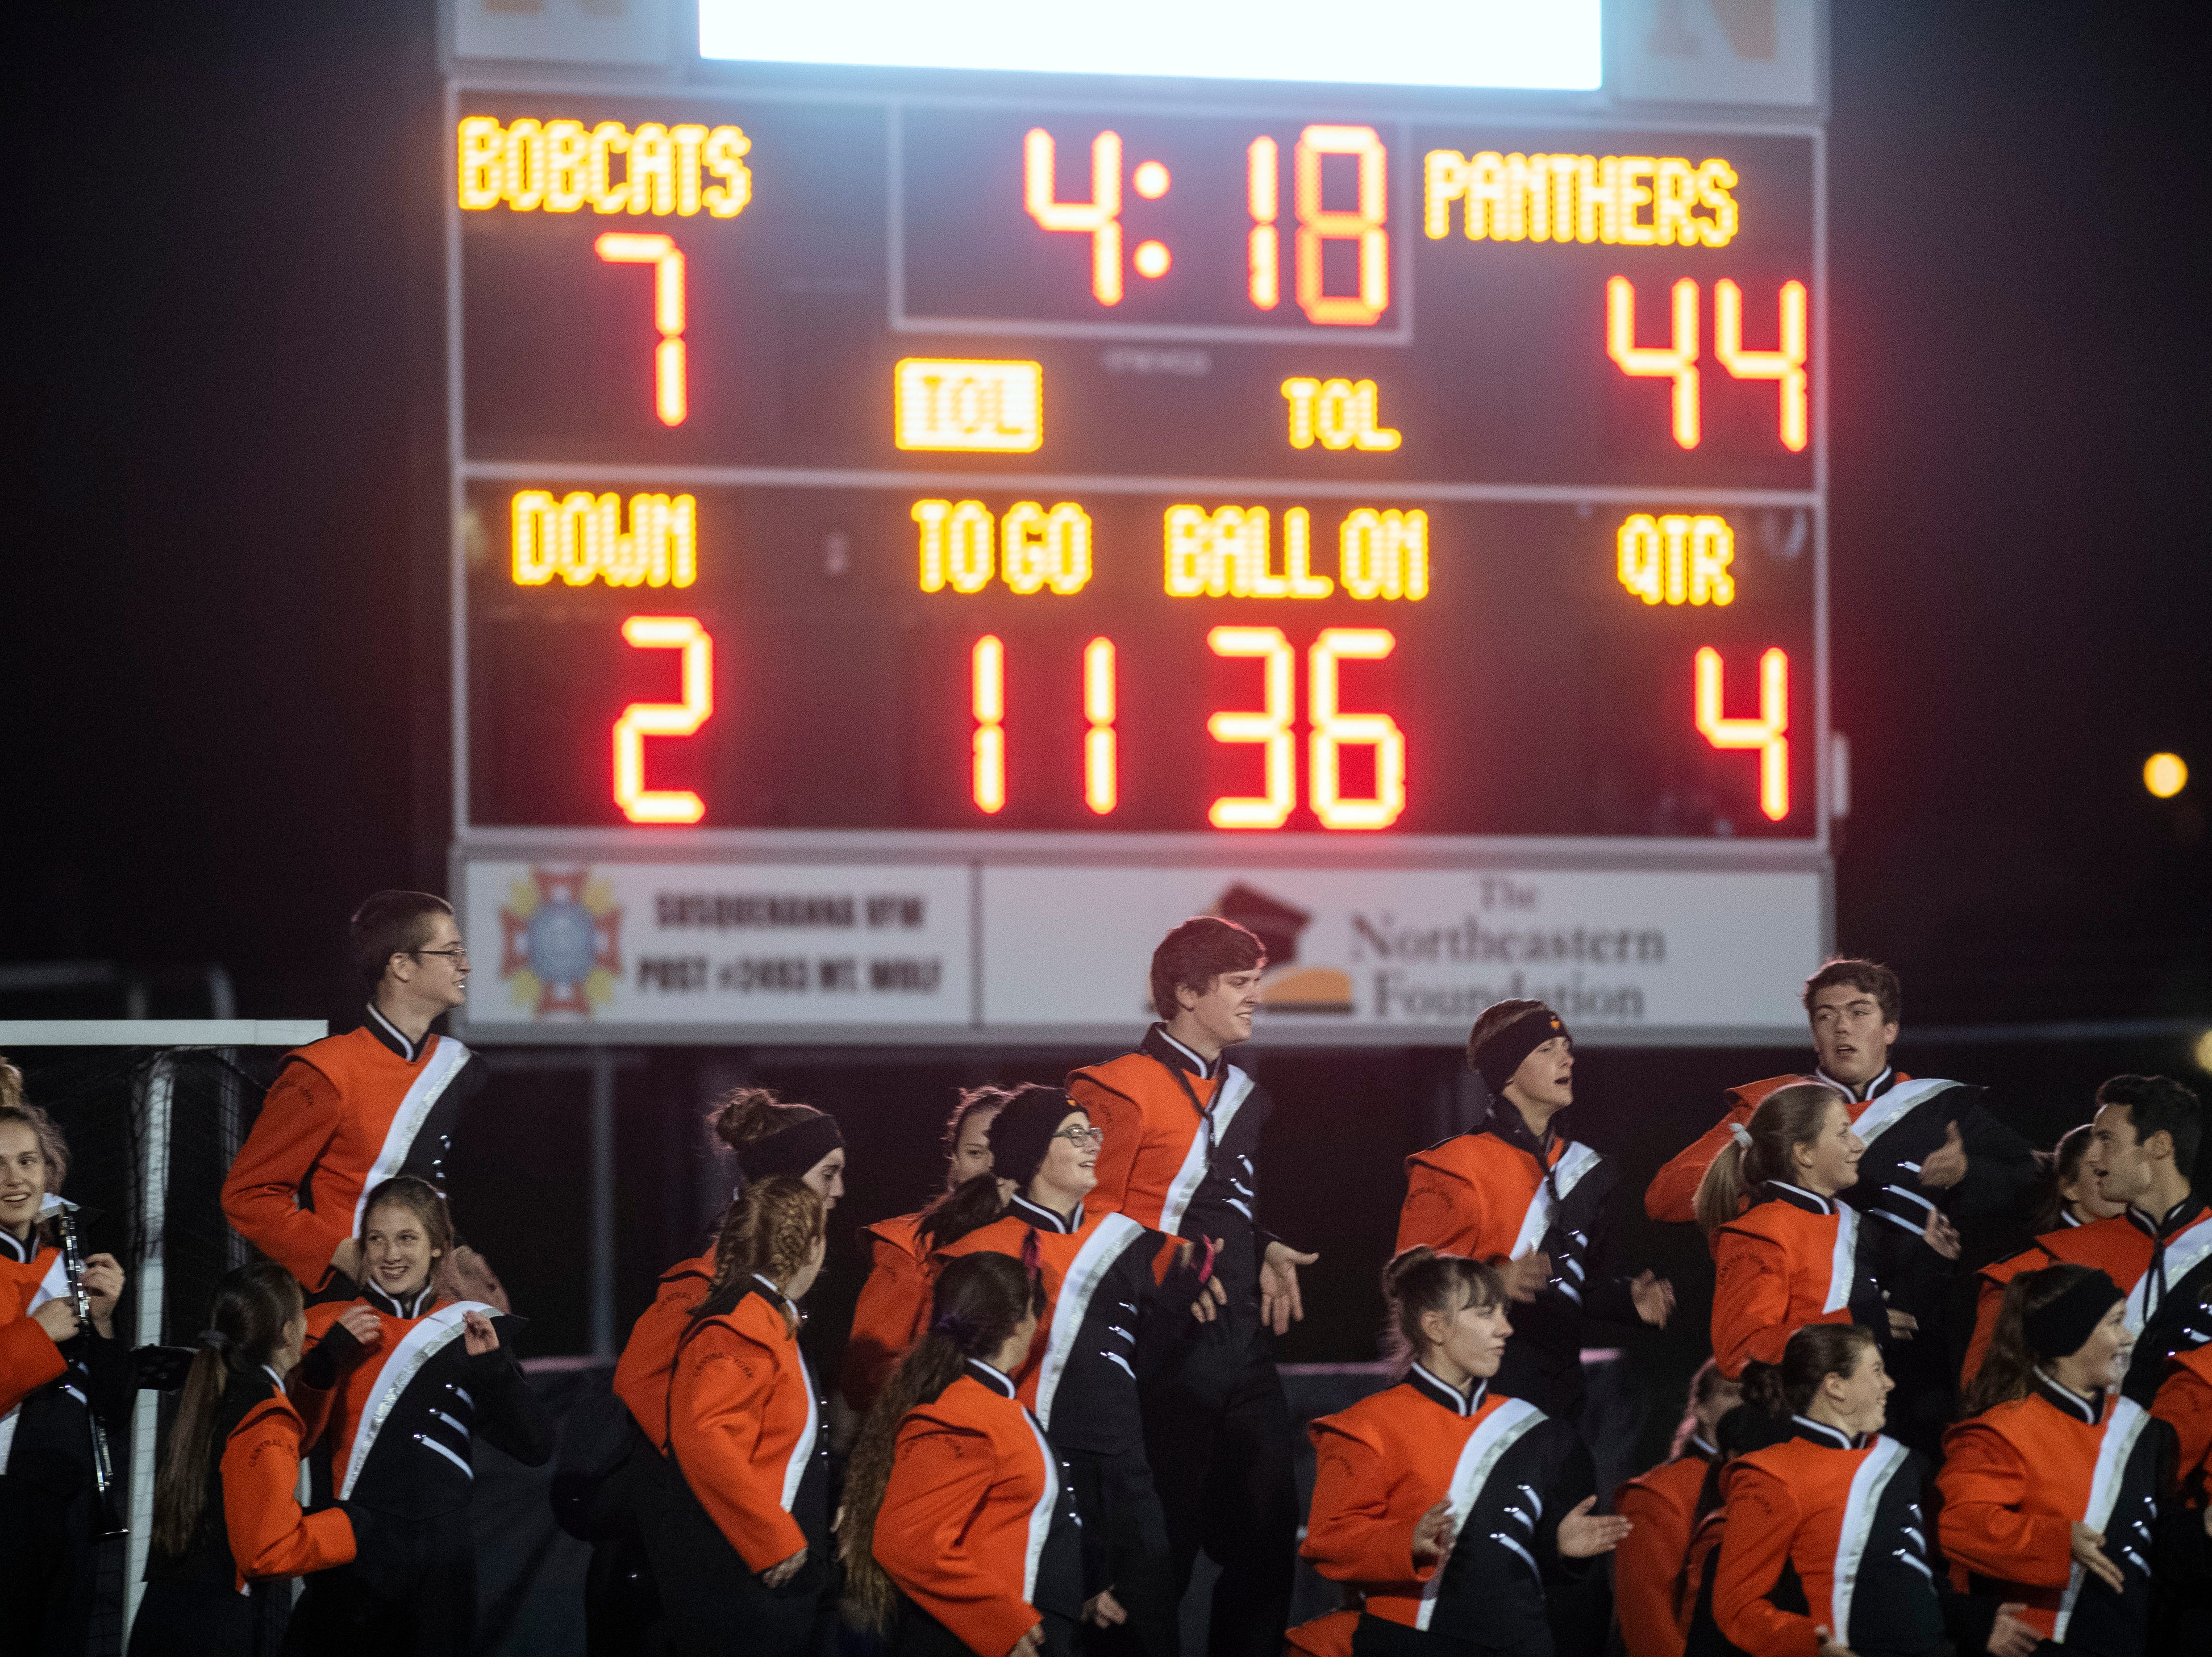 The Central York band dances in the final minutes of a YAIAA Division I football game at Northeastern High School on Friday, Oct. 12, 2018. The Central York Panthers beat the Northeastern Bobcats, 44-7.